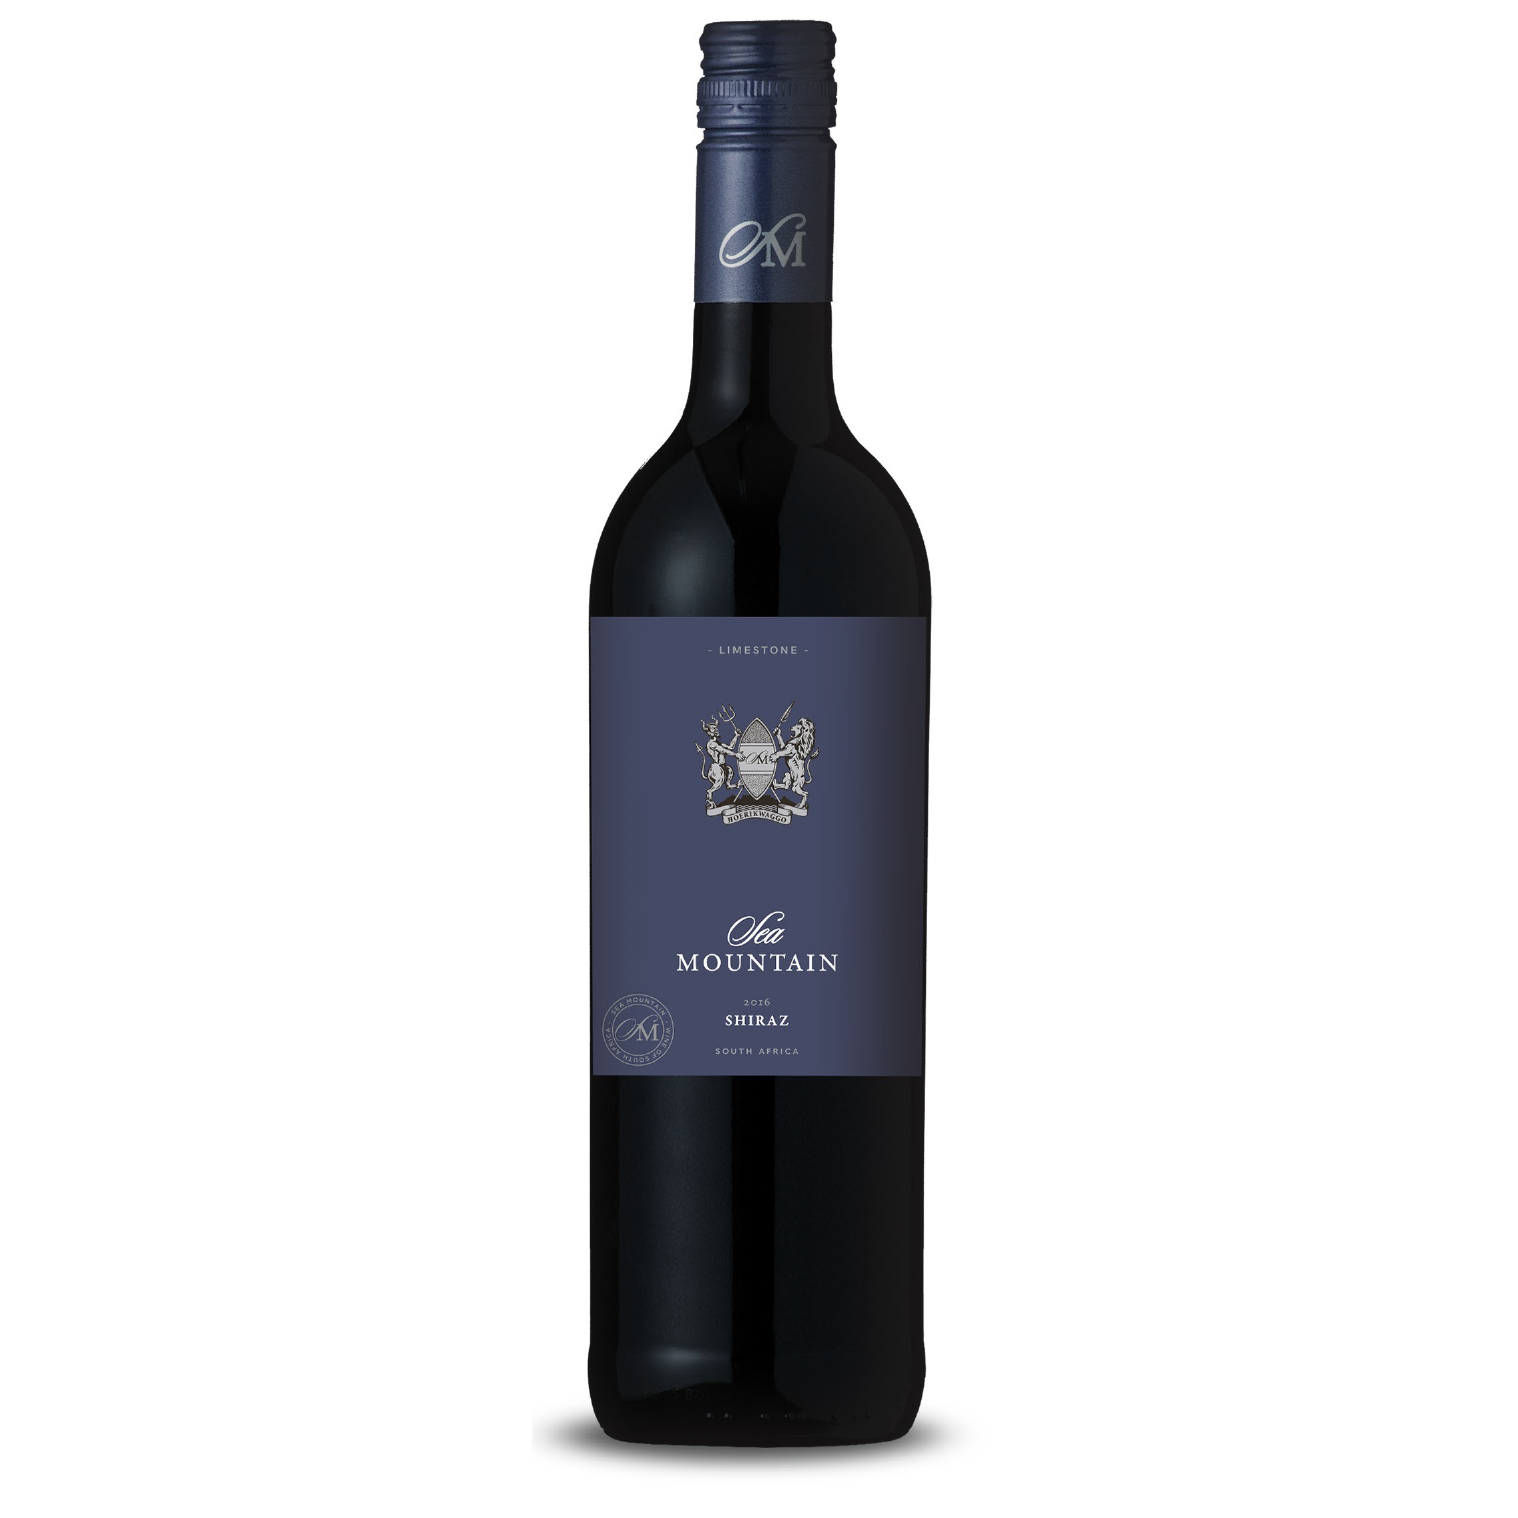 Sea Mountain LIMESTONE - SHIRAZ 2018 (1 x 75cl) - Bodega Movil